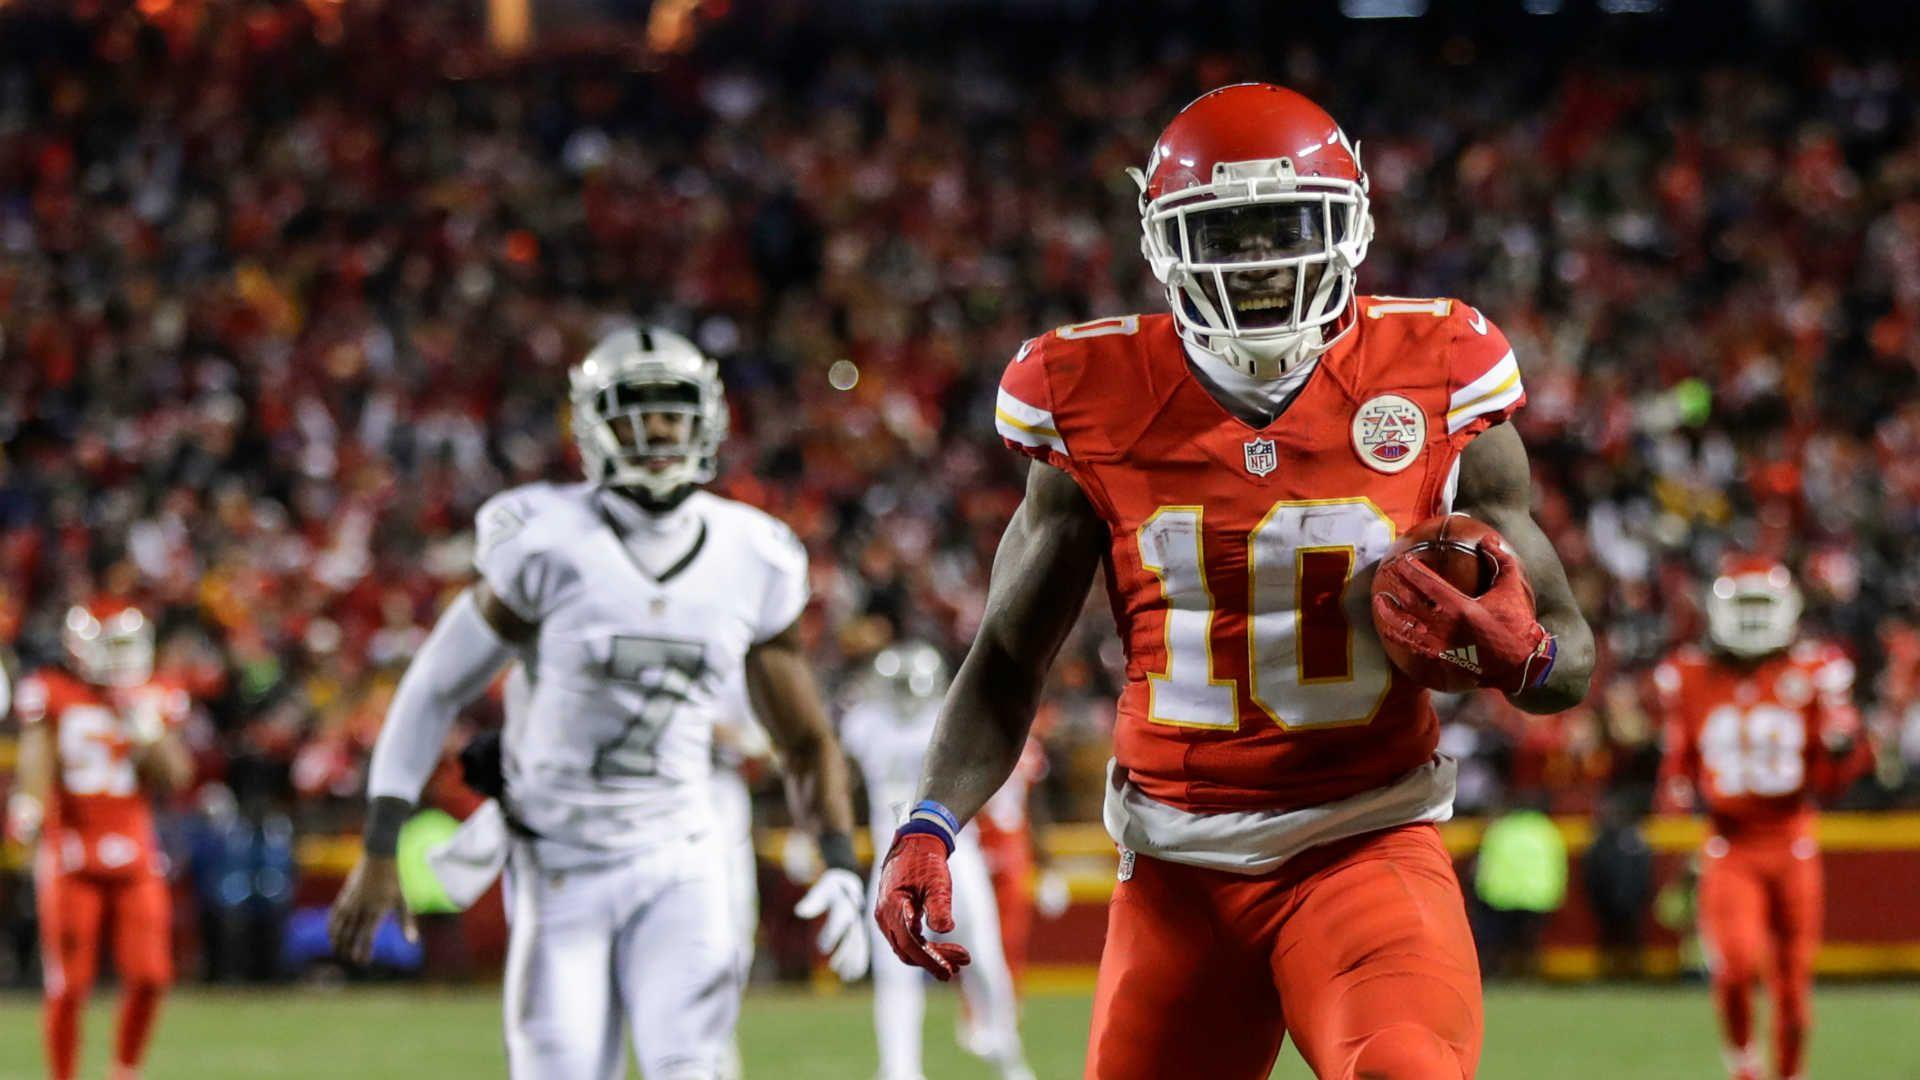 Tyreek Hill, the game